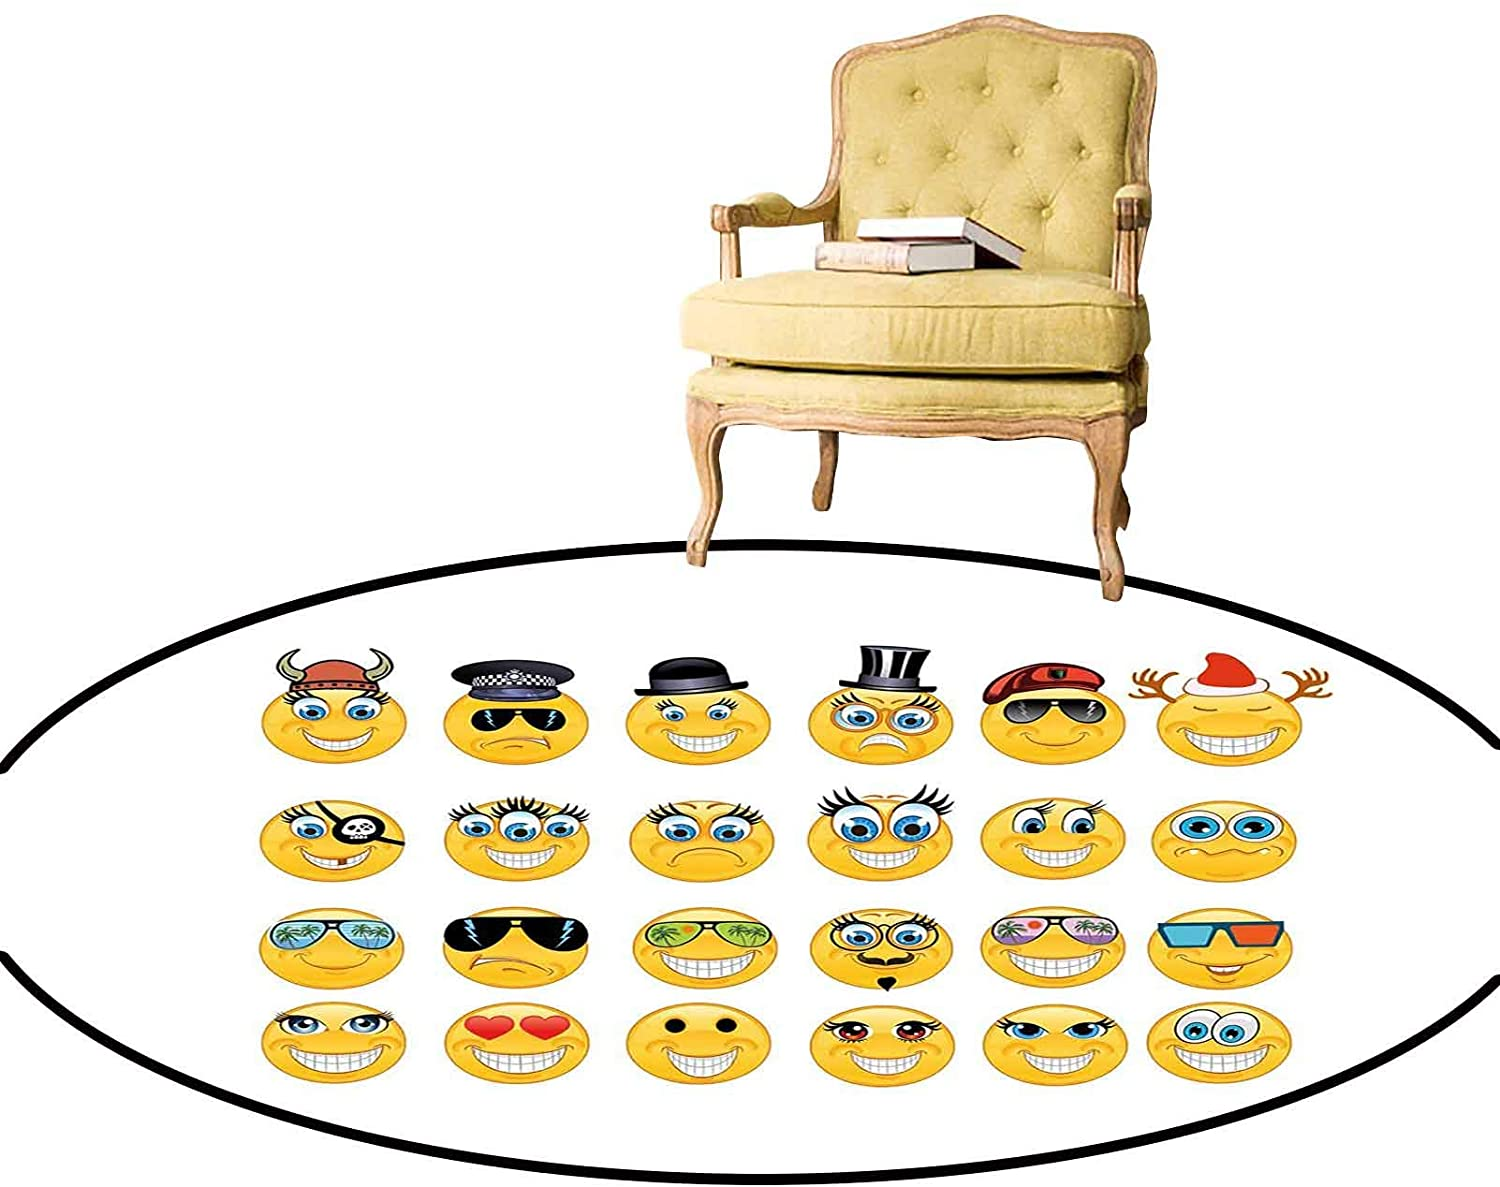 Carpet Cartoon Style Expressions with Many Themes Viking Police Christmas Cinema Pirate Personalized Round Rug for Kitchen Bar and Back Door Multicolor Diameter - 3 Feet